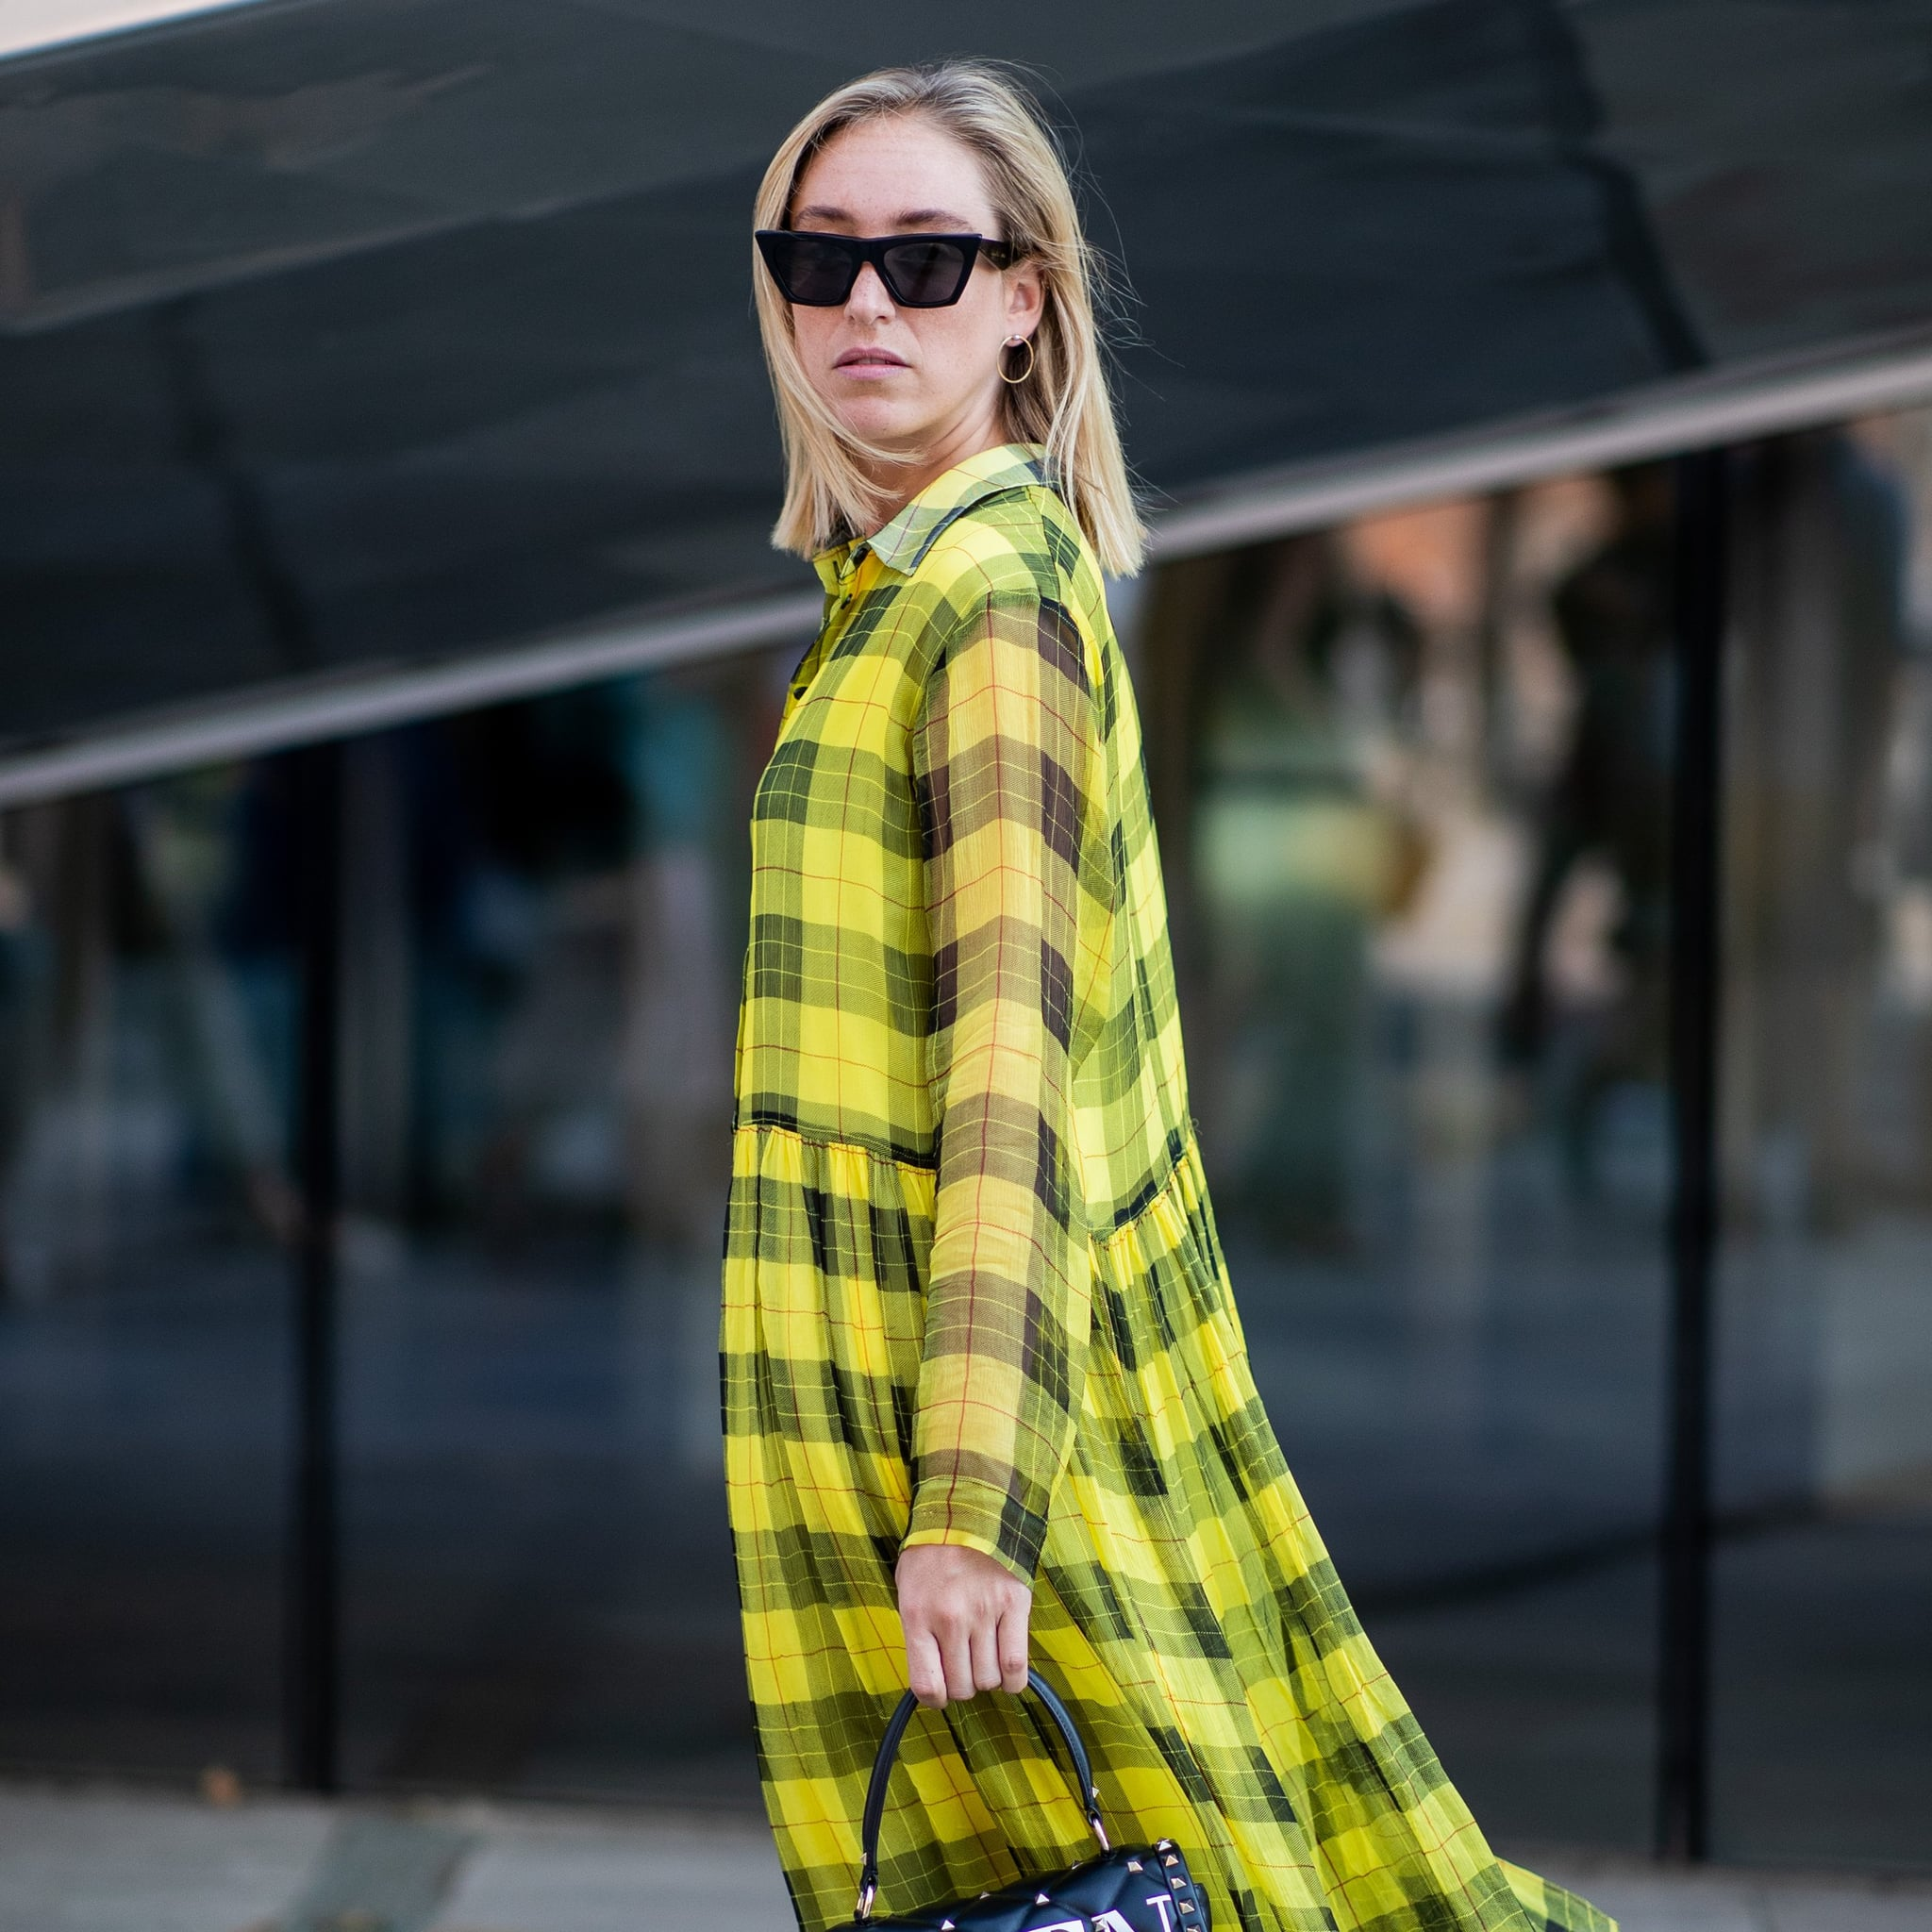 fed20cee4 Yellow Plaid Clothing Inspired by Clueless | POPSUGAR Fashion